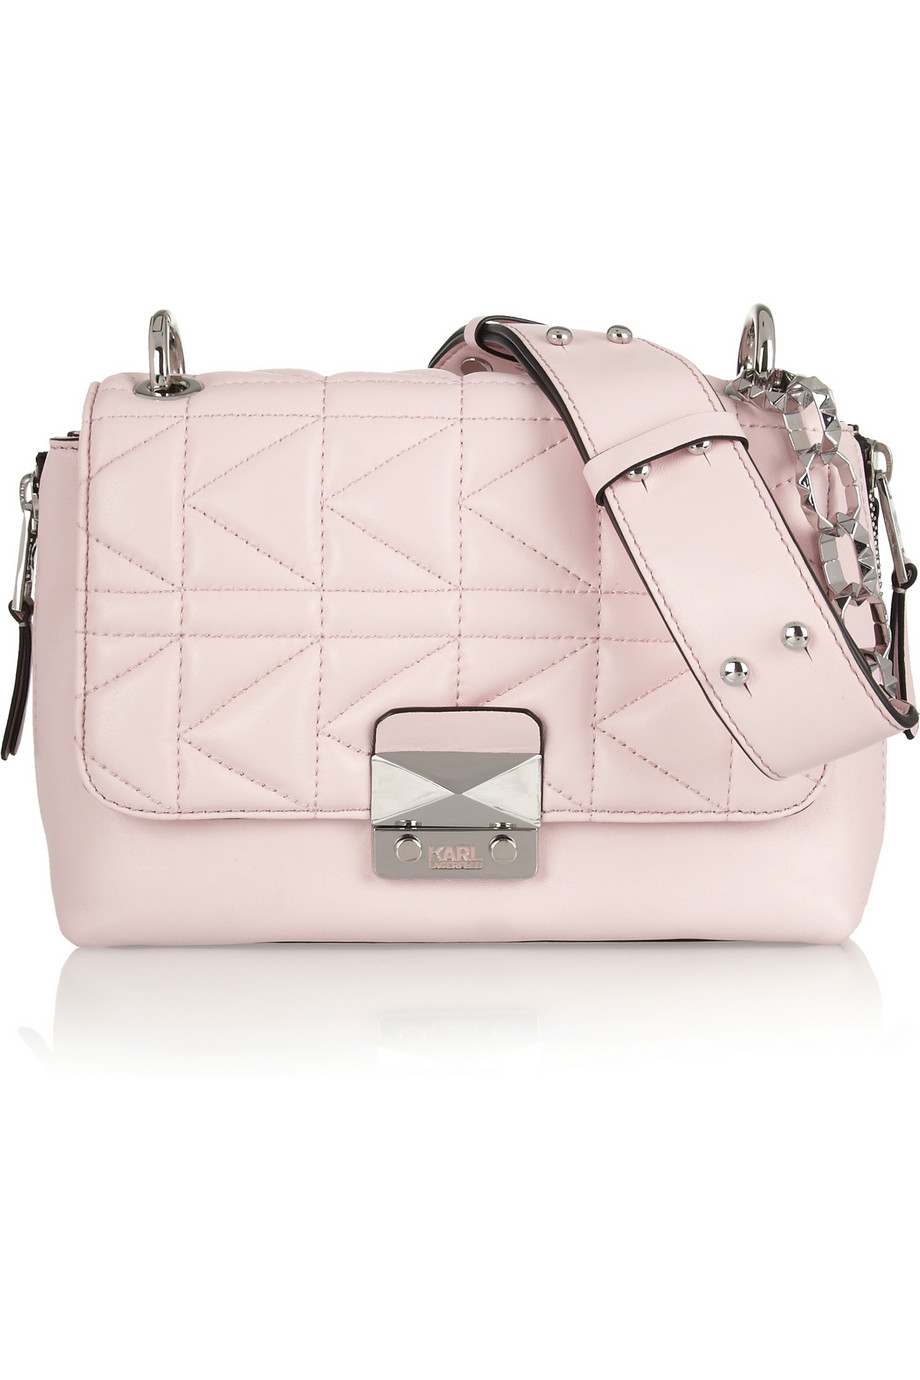 Lyst - Karl Lagerfeld Kuilted Leather Shoulder Bag in Pink 74322248c8824